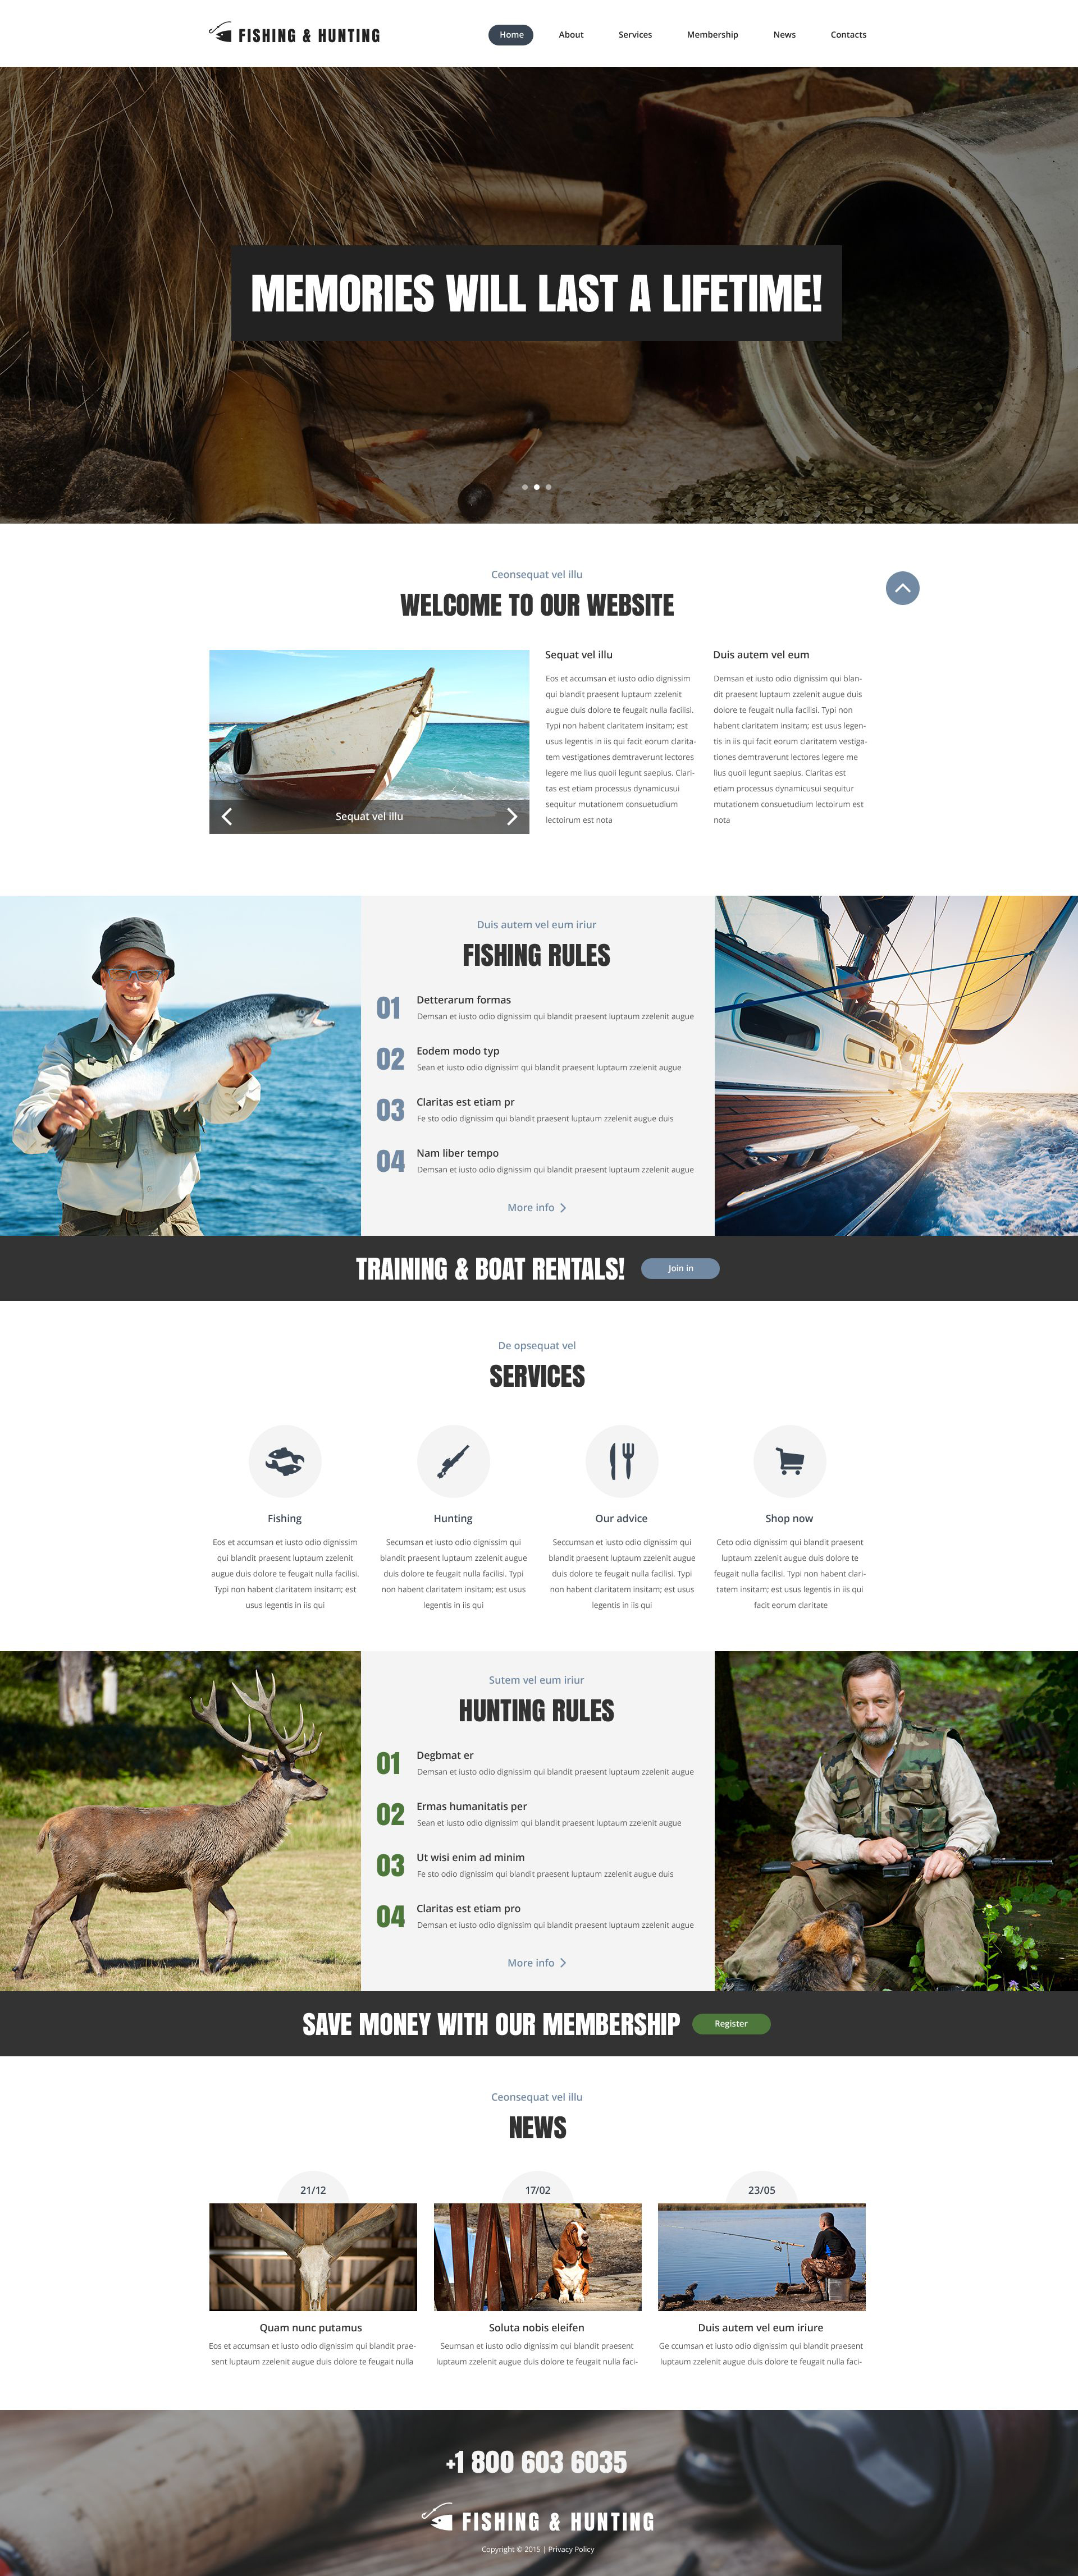 The Hunting Club Responsive Javascript Animated Design 53812, one of the best website templates of its kind (sport, most popular), also known as hunting club website template, gun website template, weapon website template, accessories website template, ammunition website template, knife website template, binocular website template, holster website template, shop website template, clothes website template, members website template, membership website template, fishing website template, fish website template, fisherman website template, boat website template, rod website template, catch website template, advice website template, fun website template, river website template, lake website template, hunting website template, gun website template, weapon website template, accessories website template, ammunition website template, knife website template, binocular website template, holster website template, shop website template, clothes and related with hunting club, gun, weapon, accessories, ammunition, knife, binocular, holster, shop, clothes, members, membership, fishing, fish, fisherman, boat, rod, catch, advice, fun, river, lake, hunting, gun, weapon, accessories, ammunition, knife, binocular, holster, shop, clothes, etc.